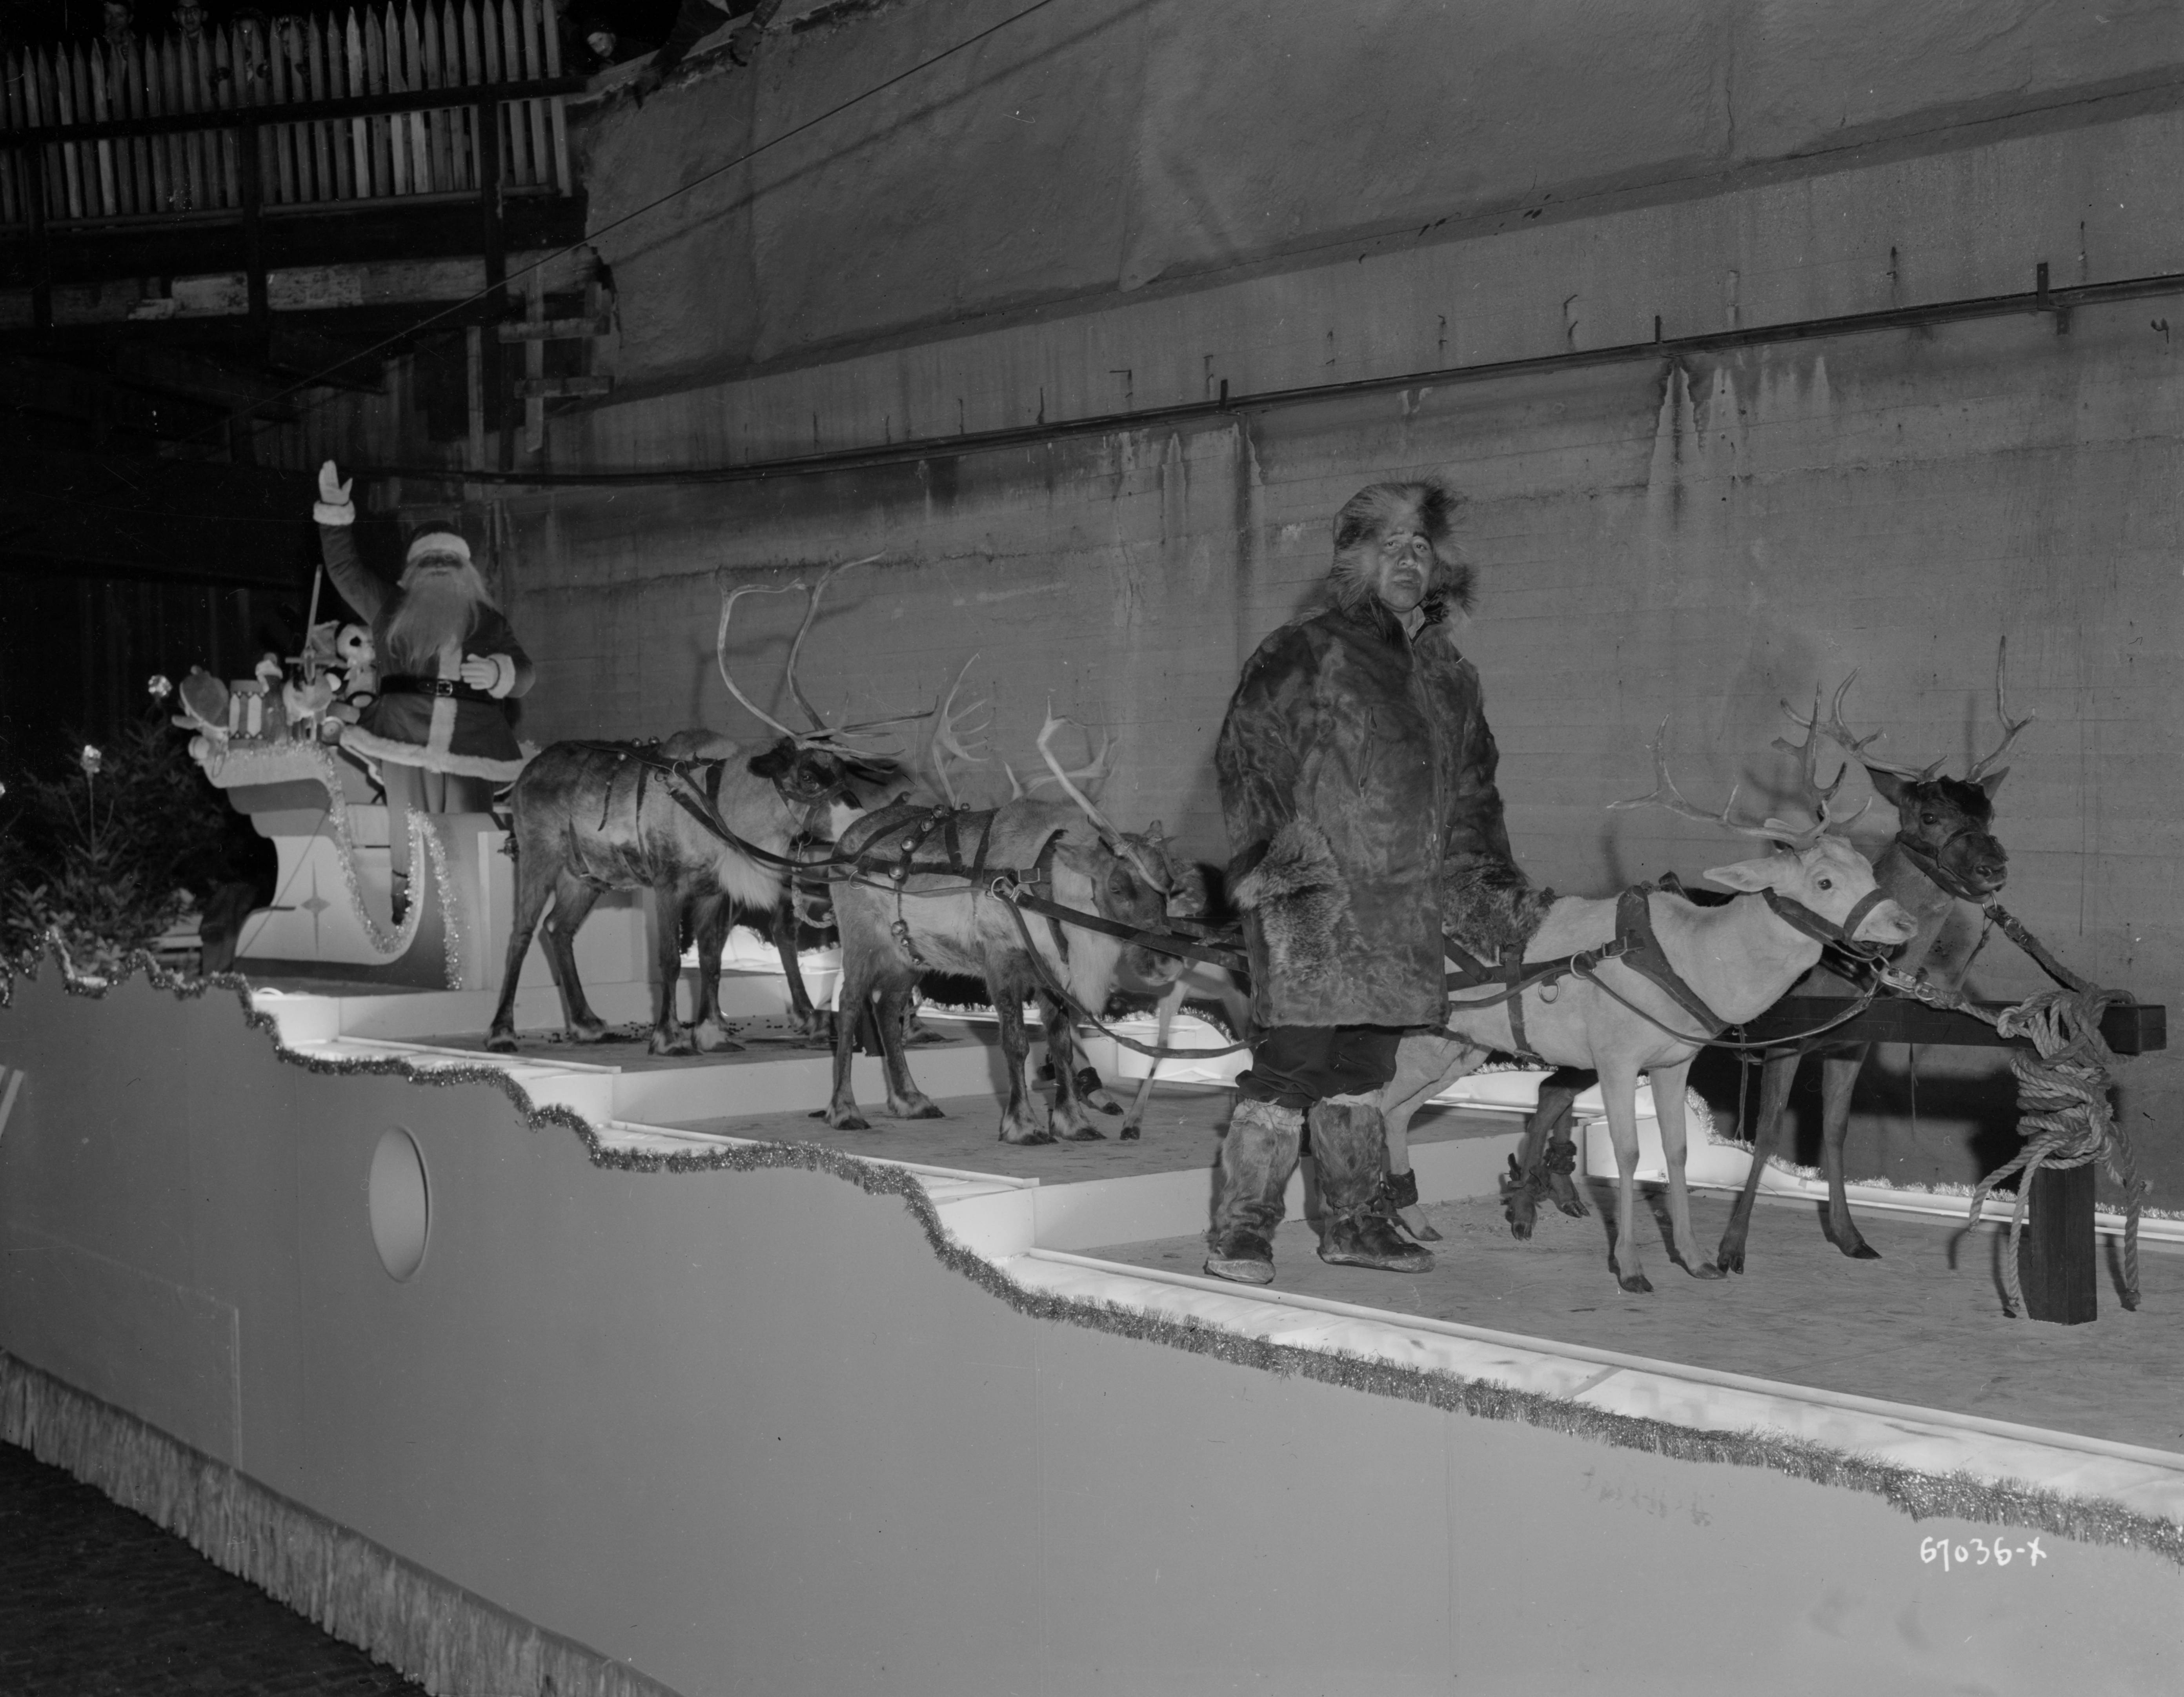 <table class=&quot;lightbox&quot;><tr><td colspan=2 class=&quot;lightbox-title&quot;>Christmas Parade Float</td></tr><tr><td colspan=2 class=&quot;lightbox-caption&quot;>This float from Schuster's Christmas parade in 1943 features Santa Claus, his reindeer, and the character Me-Tik.</td></tr><tr><td colspan=2 class=&quot;lightbox-spacer&quot;></td></tr><tr class=&quot;lightbox-detail&quot;><td class=&quot;cell-title&quot;>Source: </td><td class=&quot;cell-value&quot;>From the James Blair Murdoch Photographs. Archives, University of Wisconsin-Milwaukee Libraries.<br /><a href=&quot;https://collections.lib.uwm.edu/digital/collection/jbmurdoch/id/1198/rec/3&quot; target=&quot;_blank&quot;>University of Wisconsin-Milwaukee</a></td></tr><tr class=&quot;filler-row&quot;><td colspan=2>&nbsp;</td></tr></table>